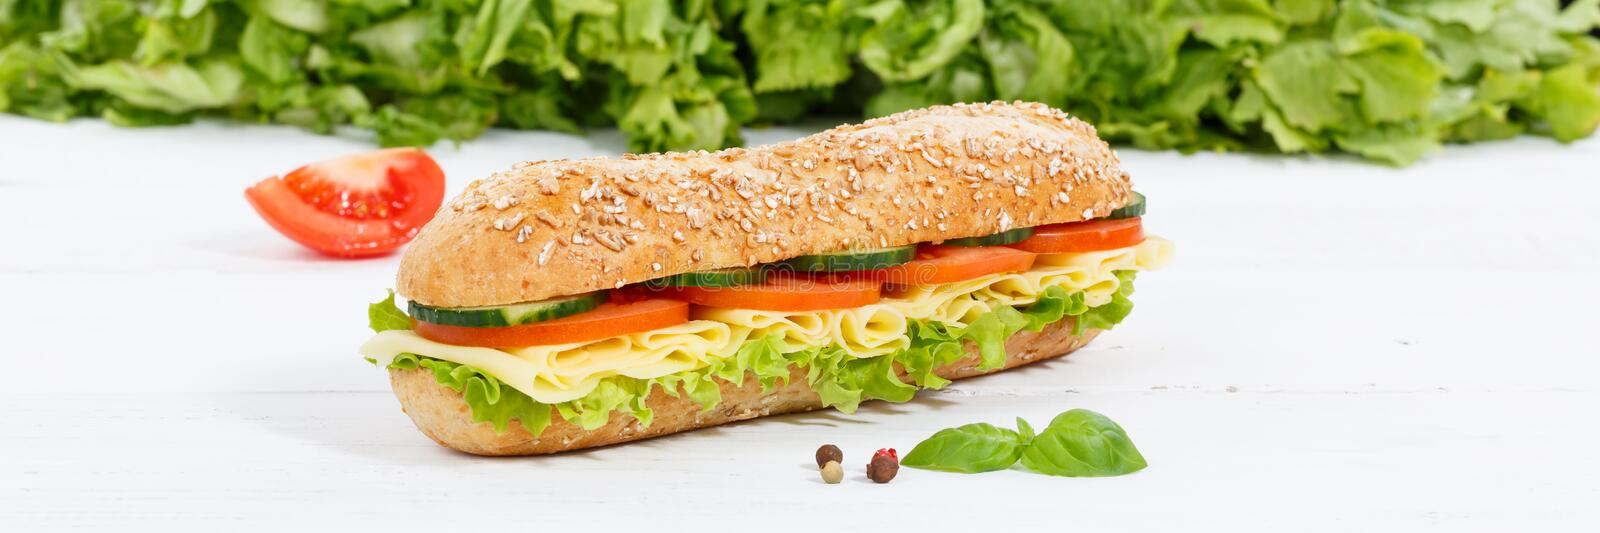 Sub sandwich whole grain grains baguette with cheese banner on w. Ooden board wood stock image